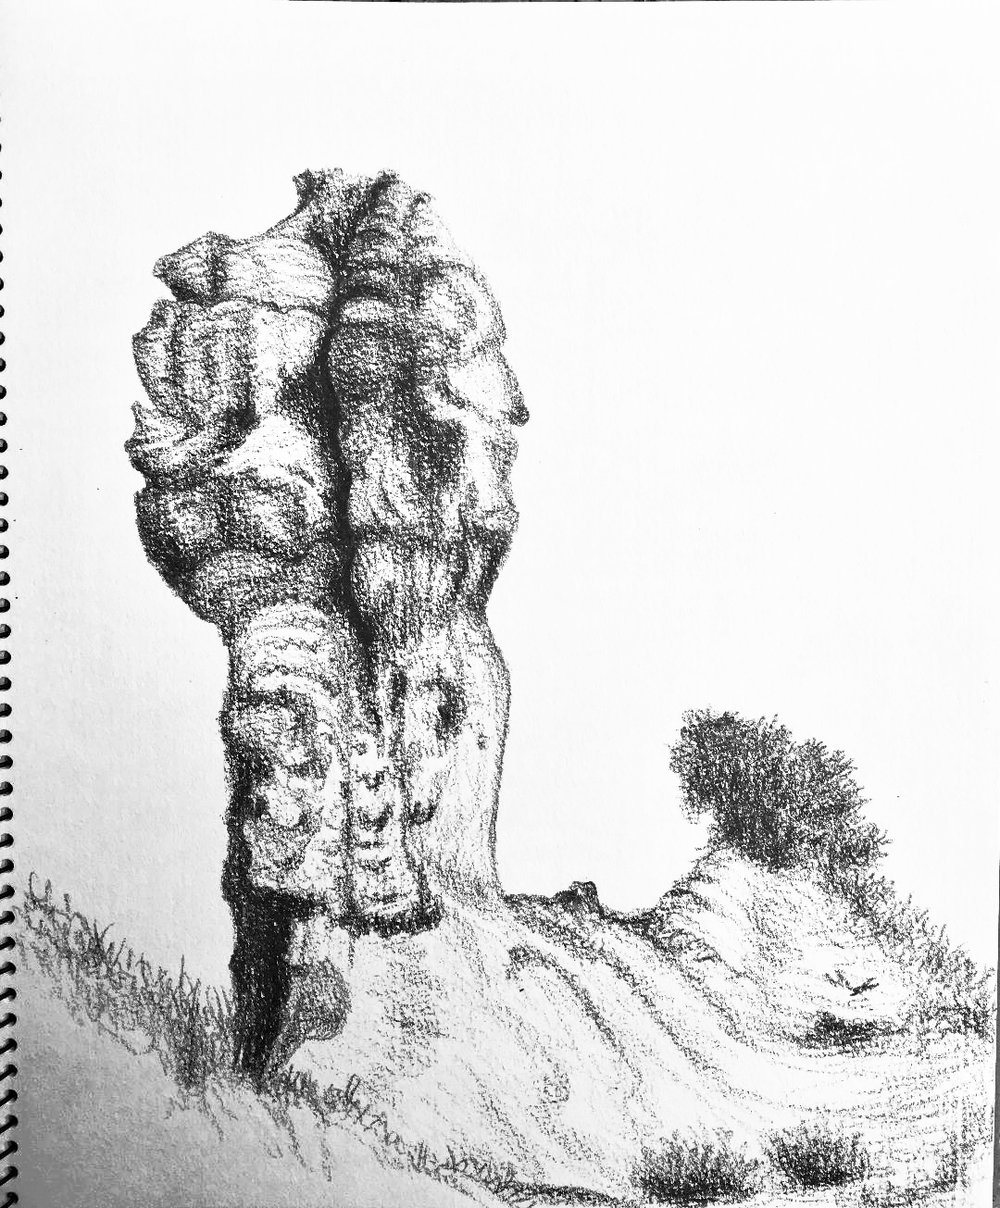 Another ridge, a guardian of Senise and Neopoli, 30.7. 2012. Prismacolor. J. Cook artist